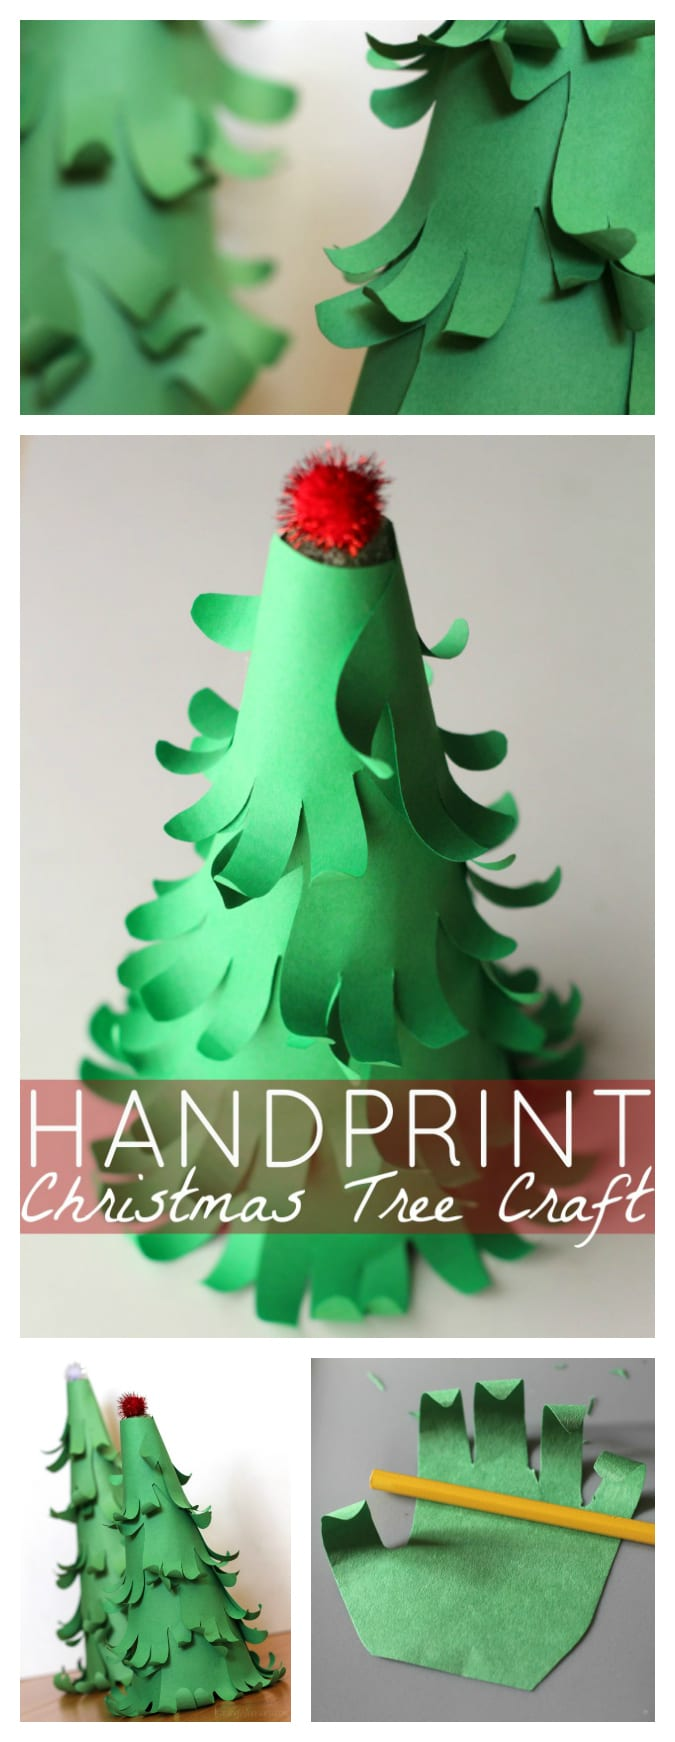 Easy 3D Handprint Christmas Tree Craft | Make a unique and adorable holiday keepsake with this handprint inspired easy Christmas craft for your kids - #Christmas #Craft #DIY #KidsCraft